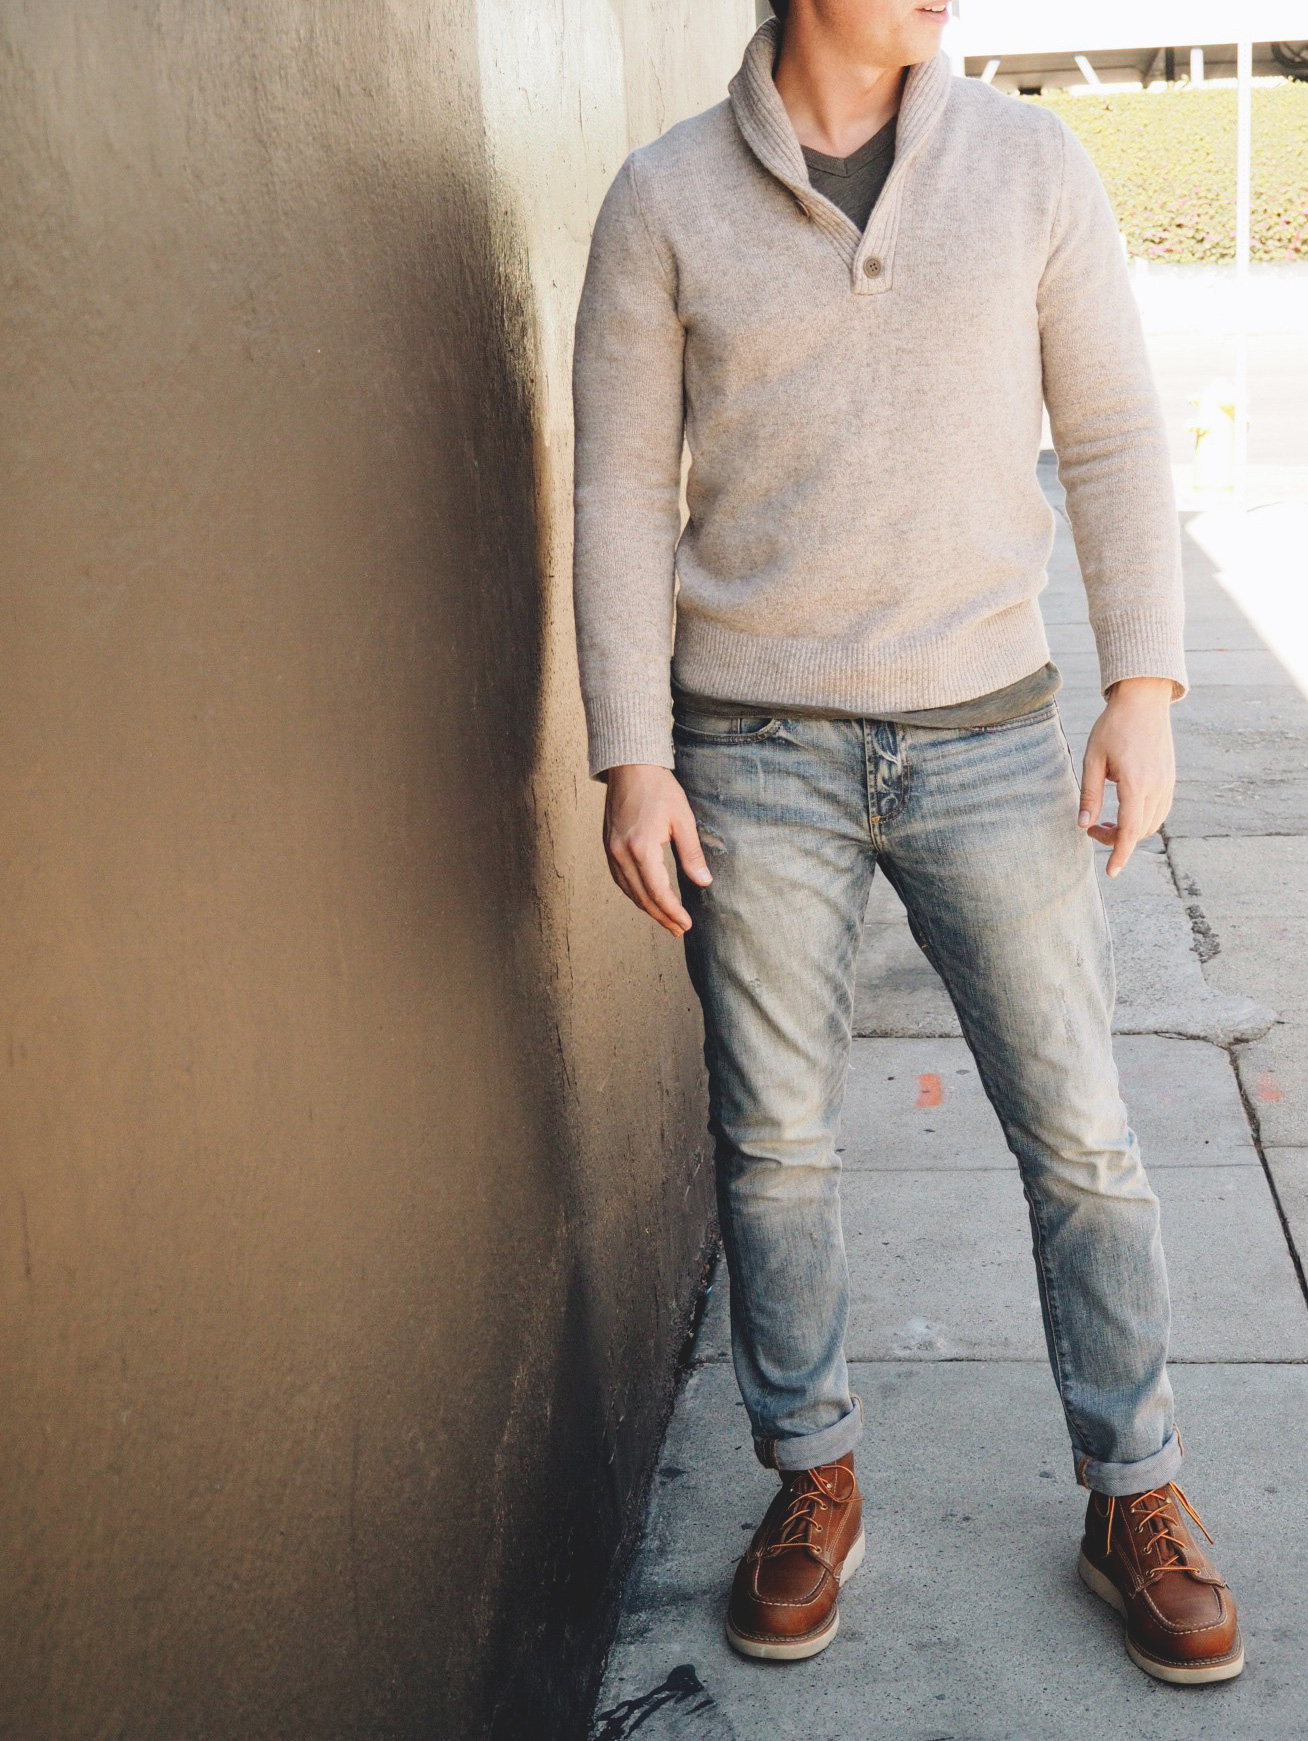 Casual shawl collar sweater outfit